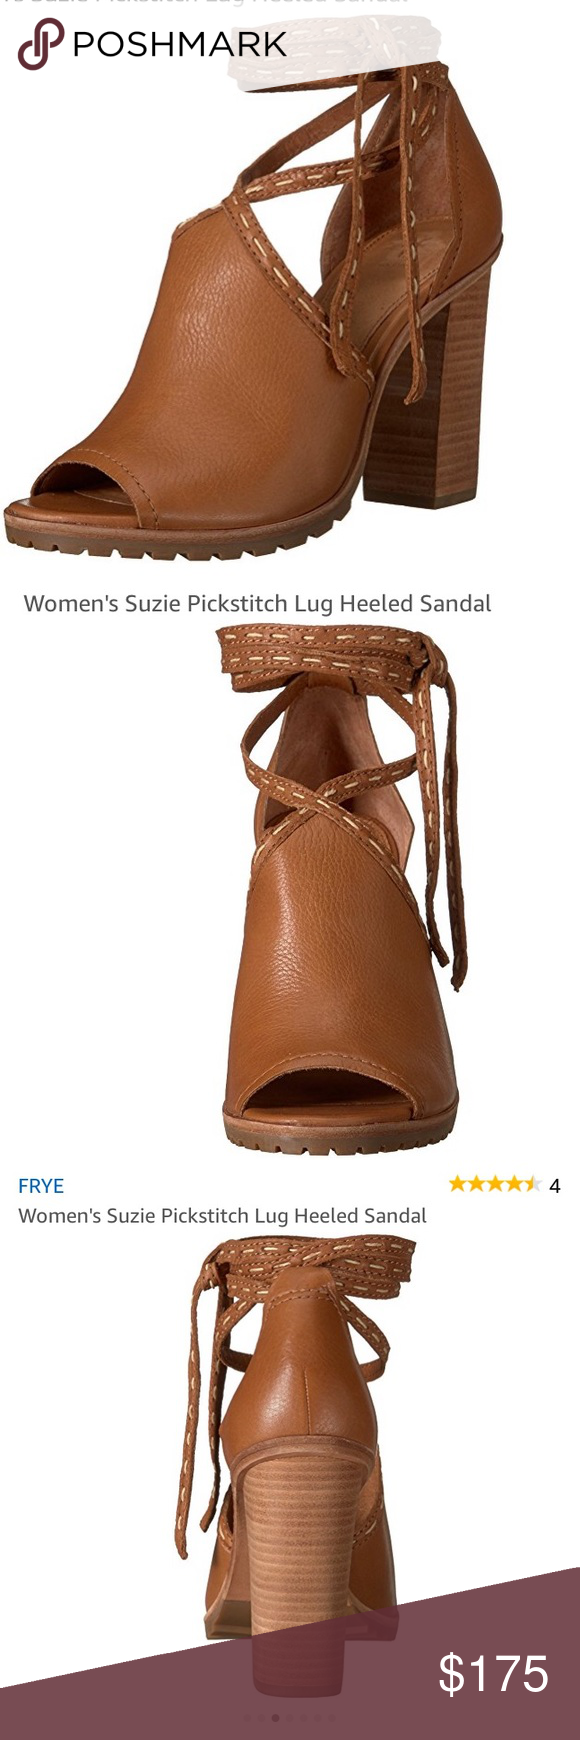 Suzie Pickstitch Lug Frye Cg6Cx